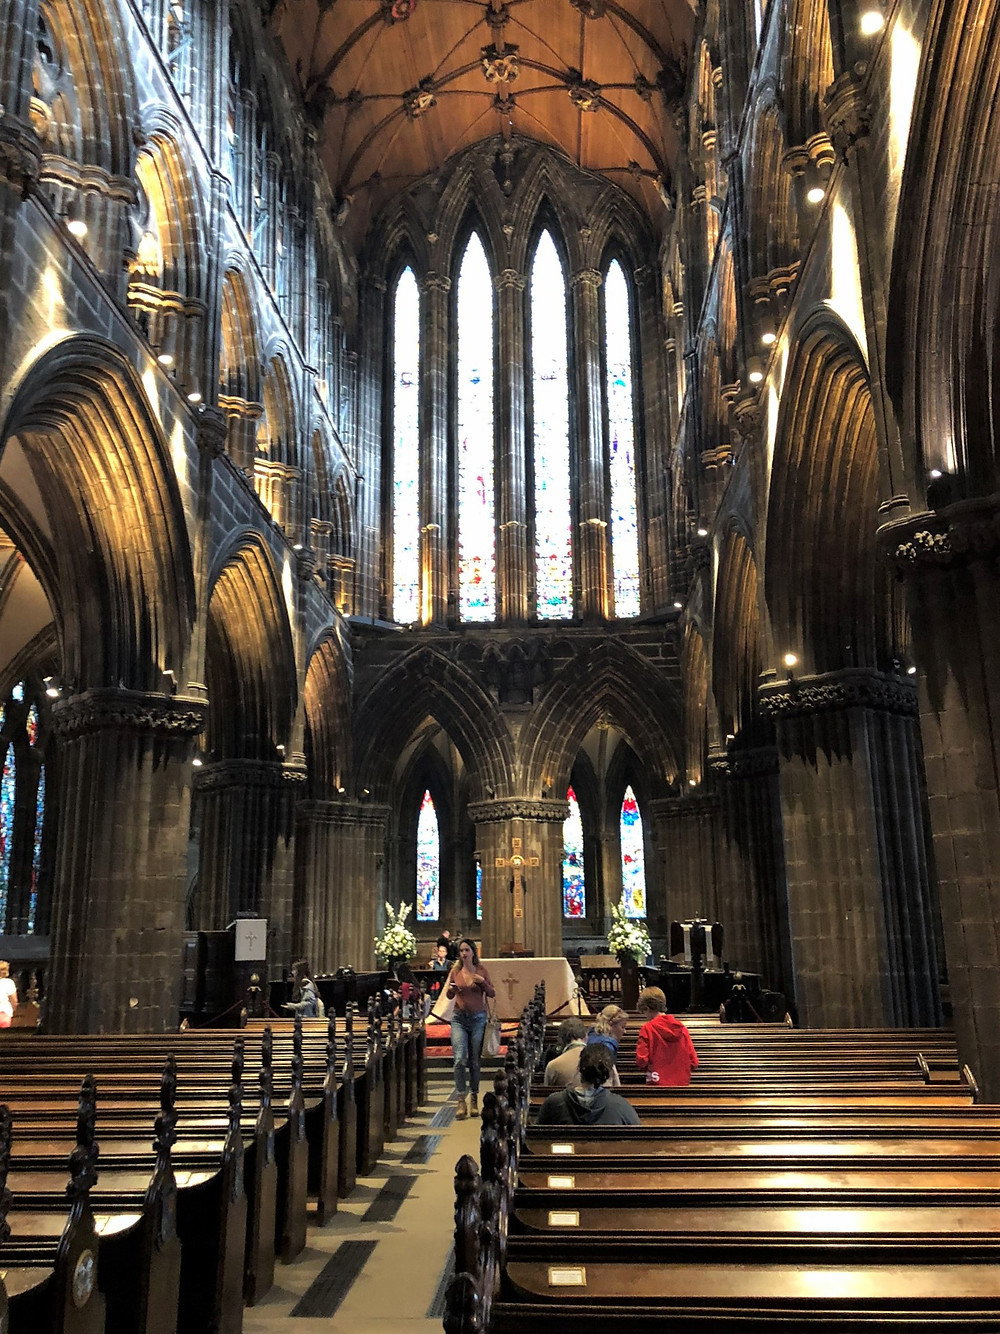 The Quire of Glasgow Cathedral was built in the mid-1200s